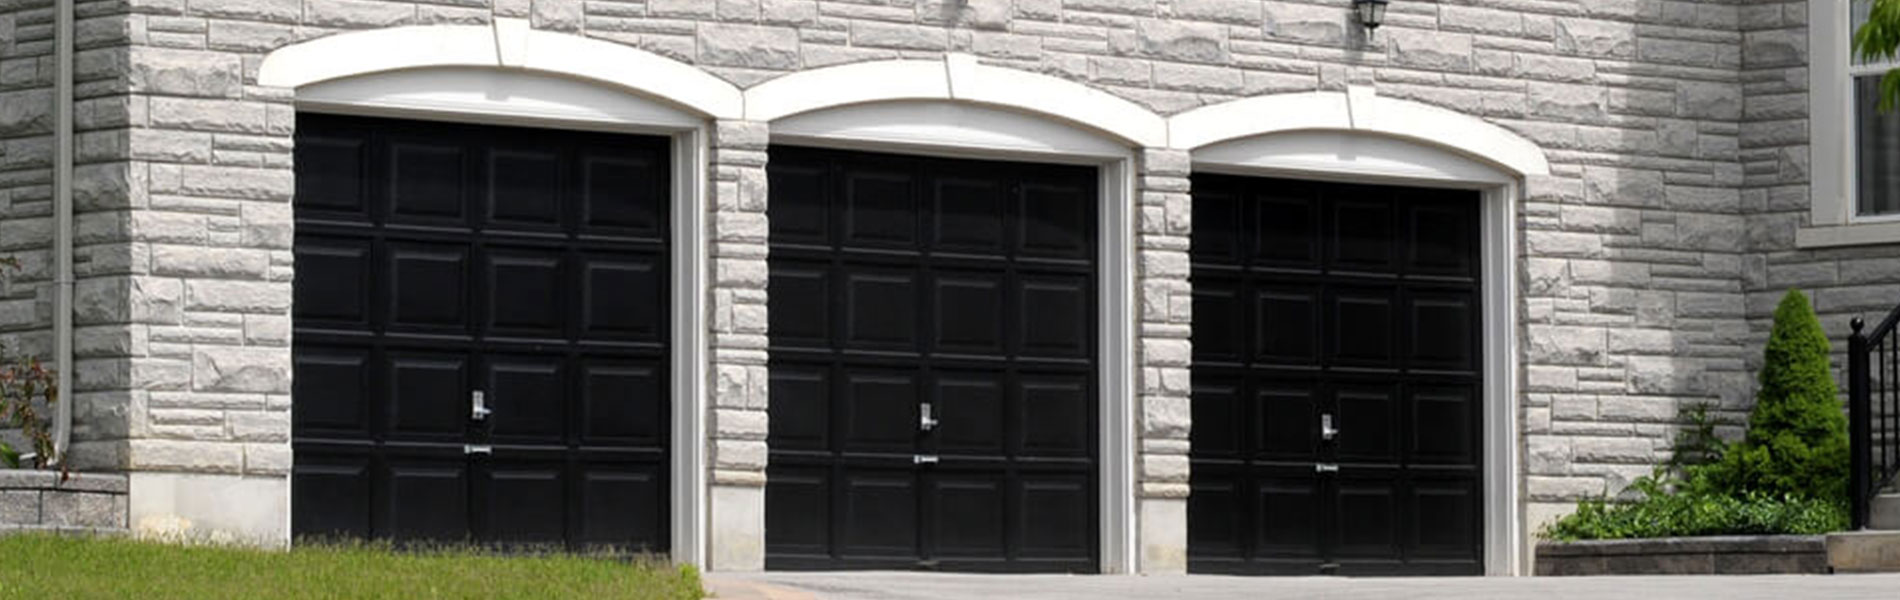 Neighborhood Garage Door Service, Floral Park, NY 516-673-9334